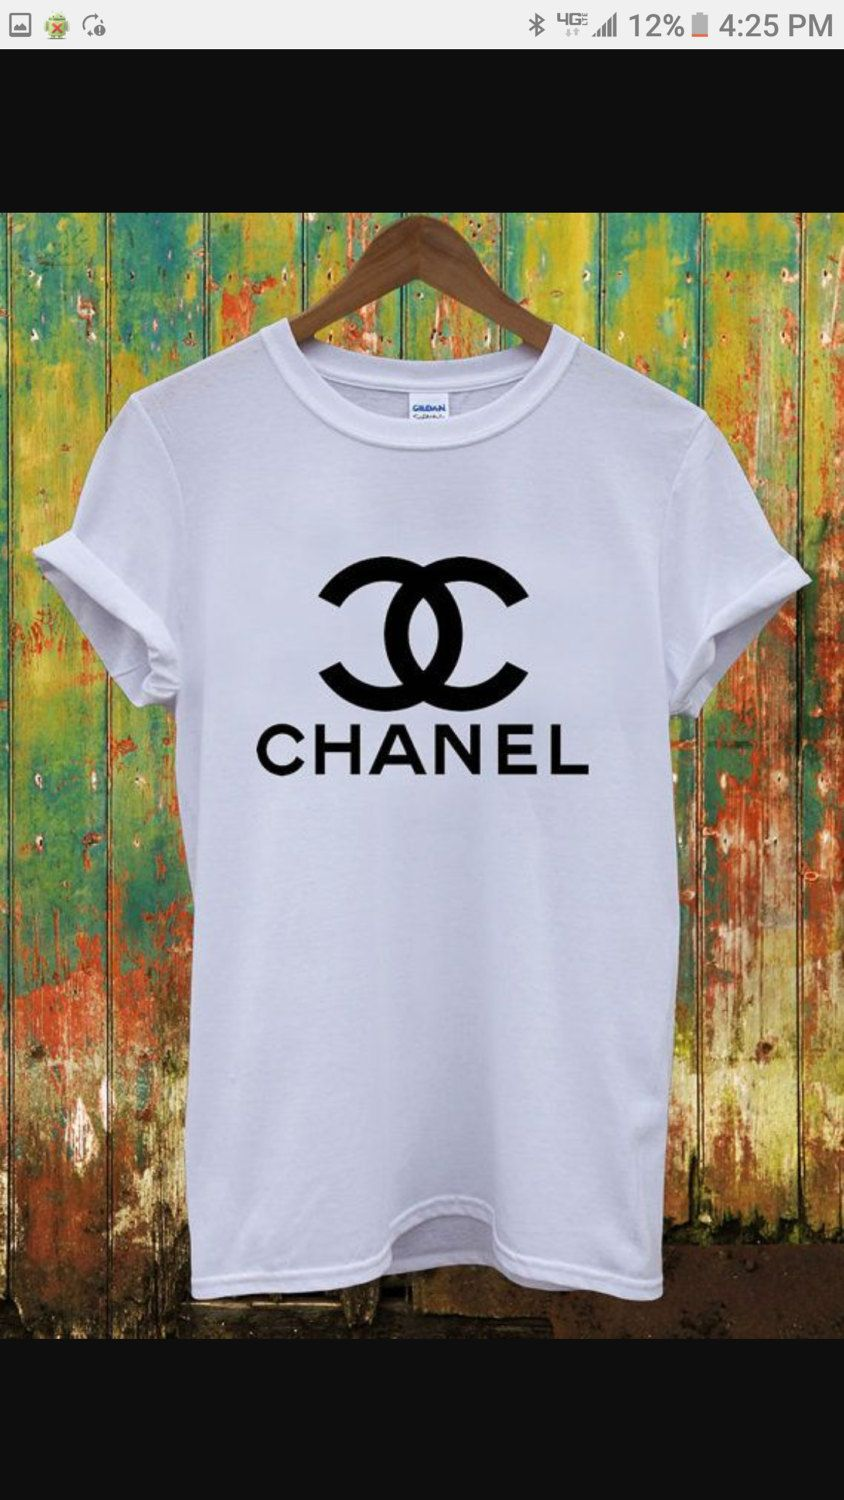 Chanel inspired t shirt 00b9e57fdd50